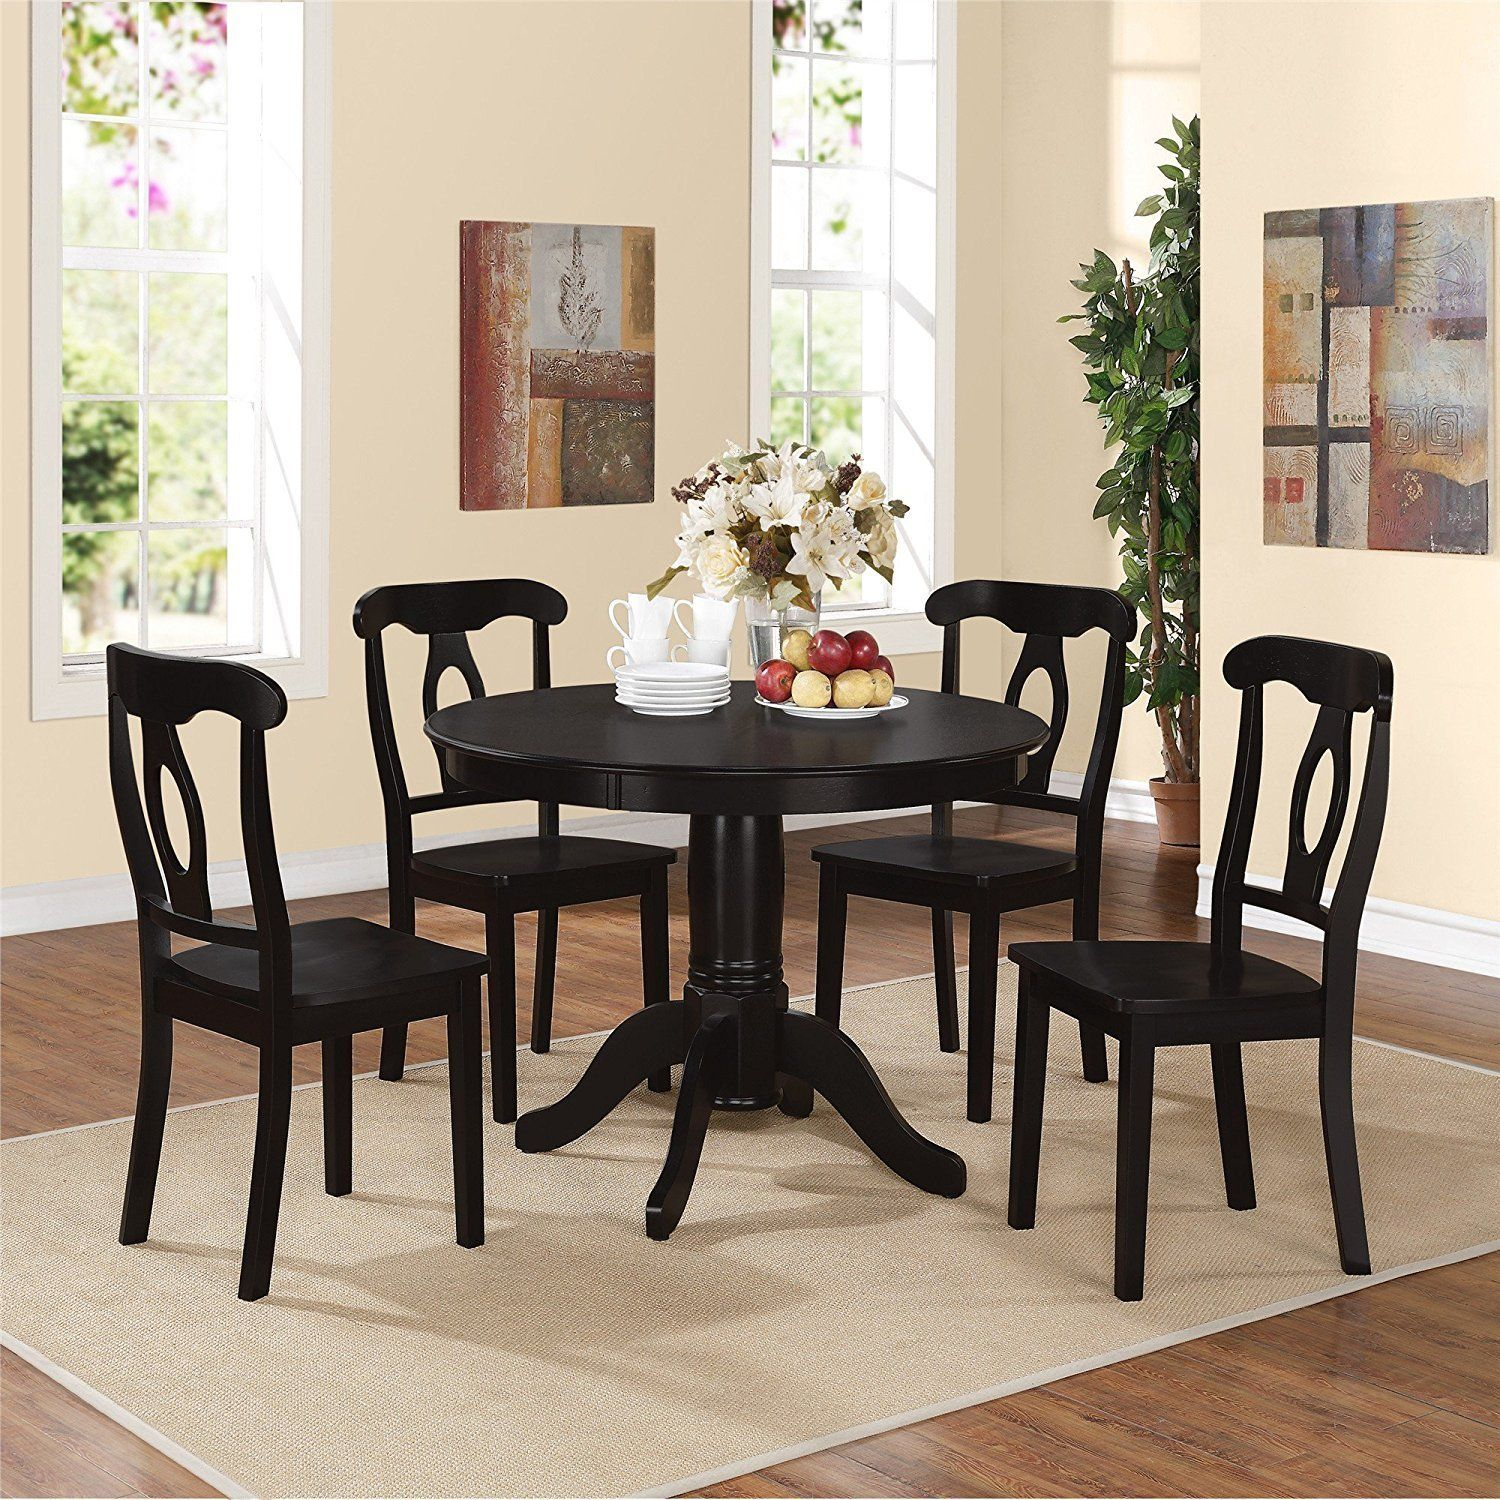 Deluxe 5 Piece Dining Room Set Furniture